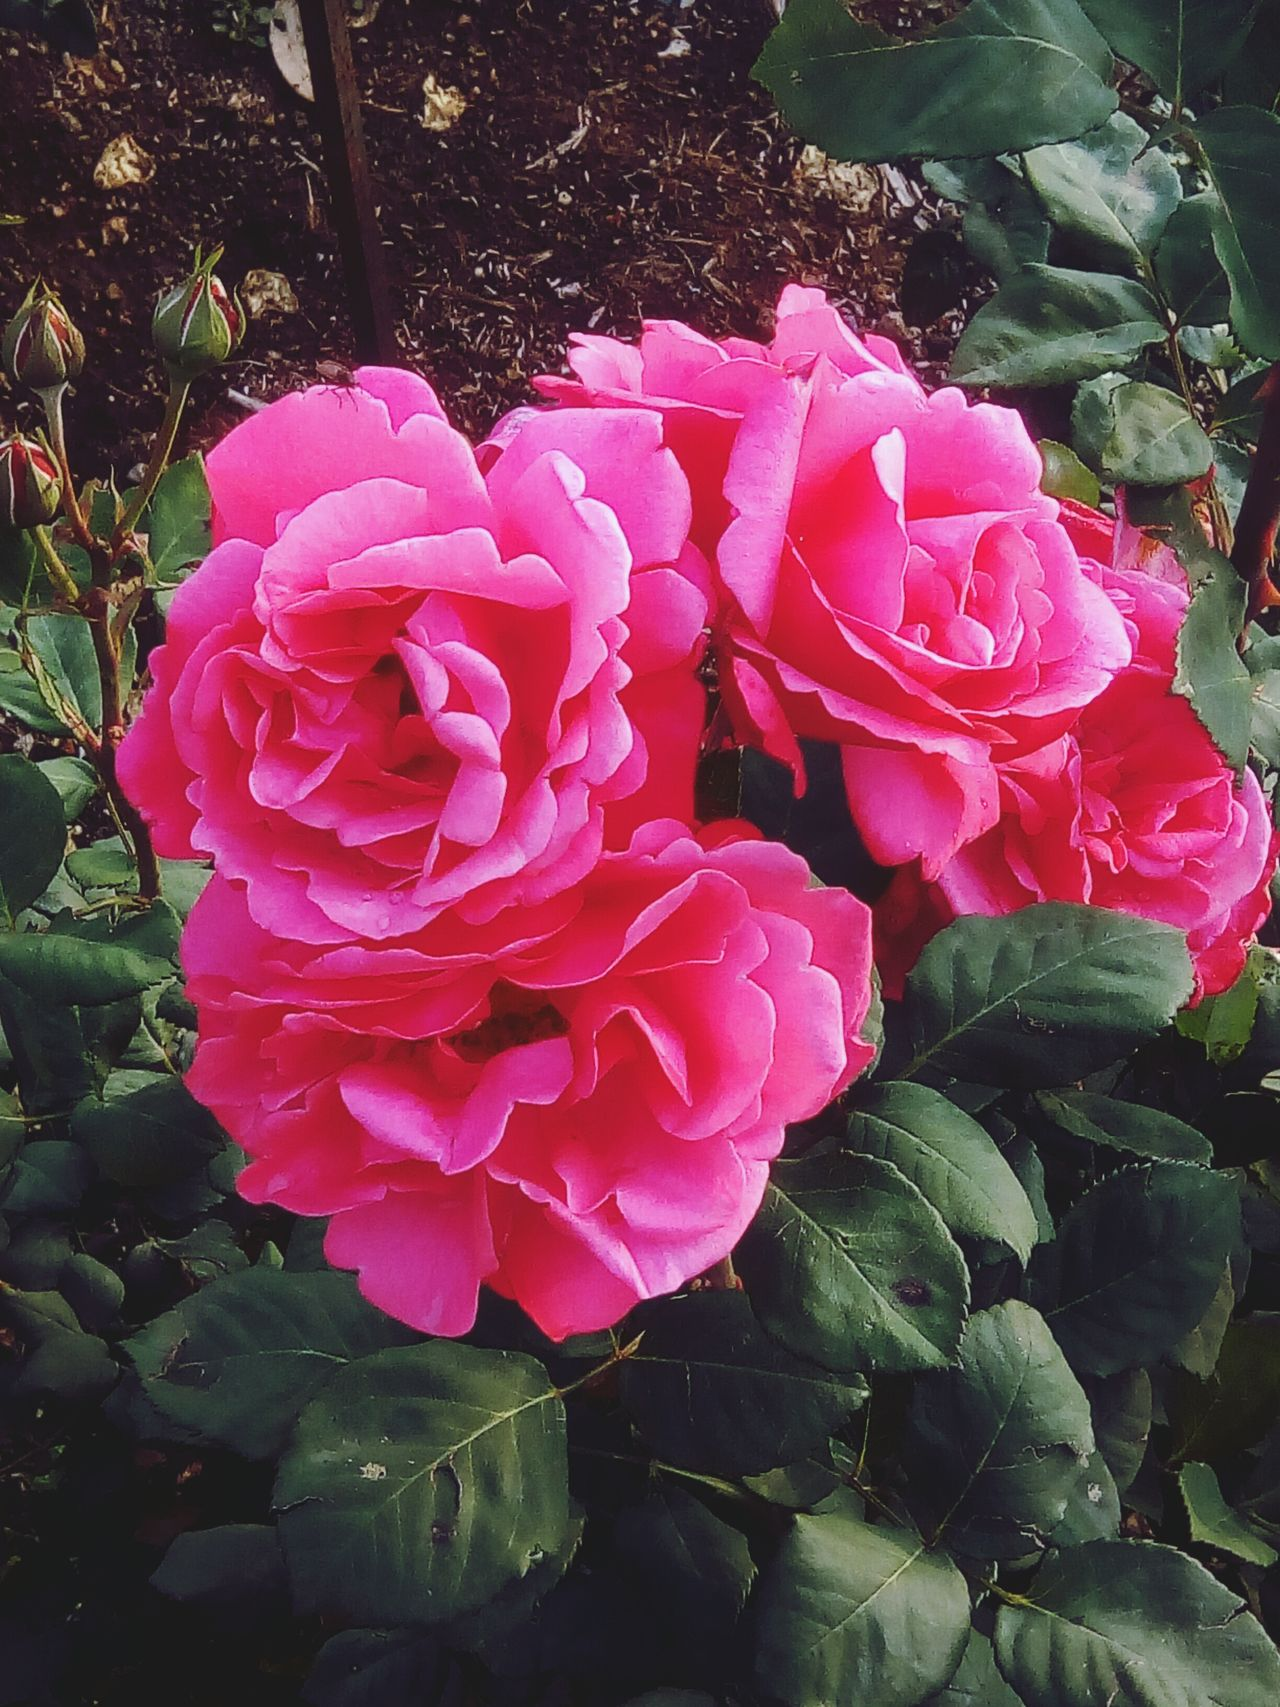 Flower Nature Petal Plant Pink Color Beauty In Nature No People Growth Flower Head Rose - Flower Outdoors Day Freshness Blooming Close-up